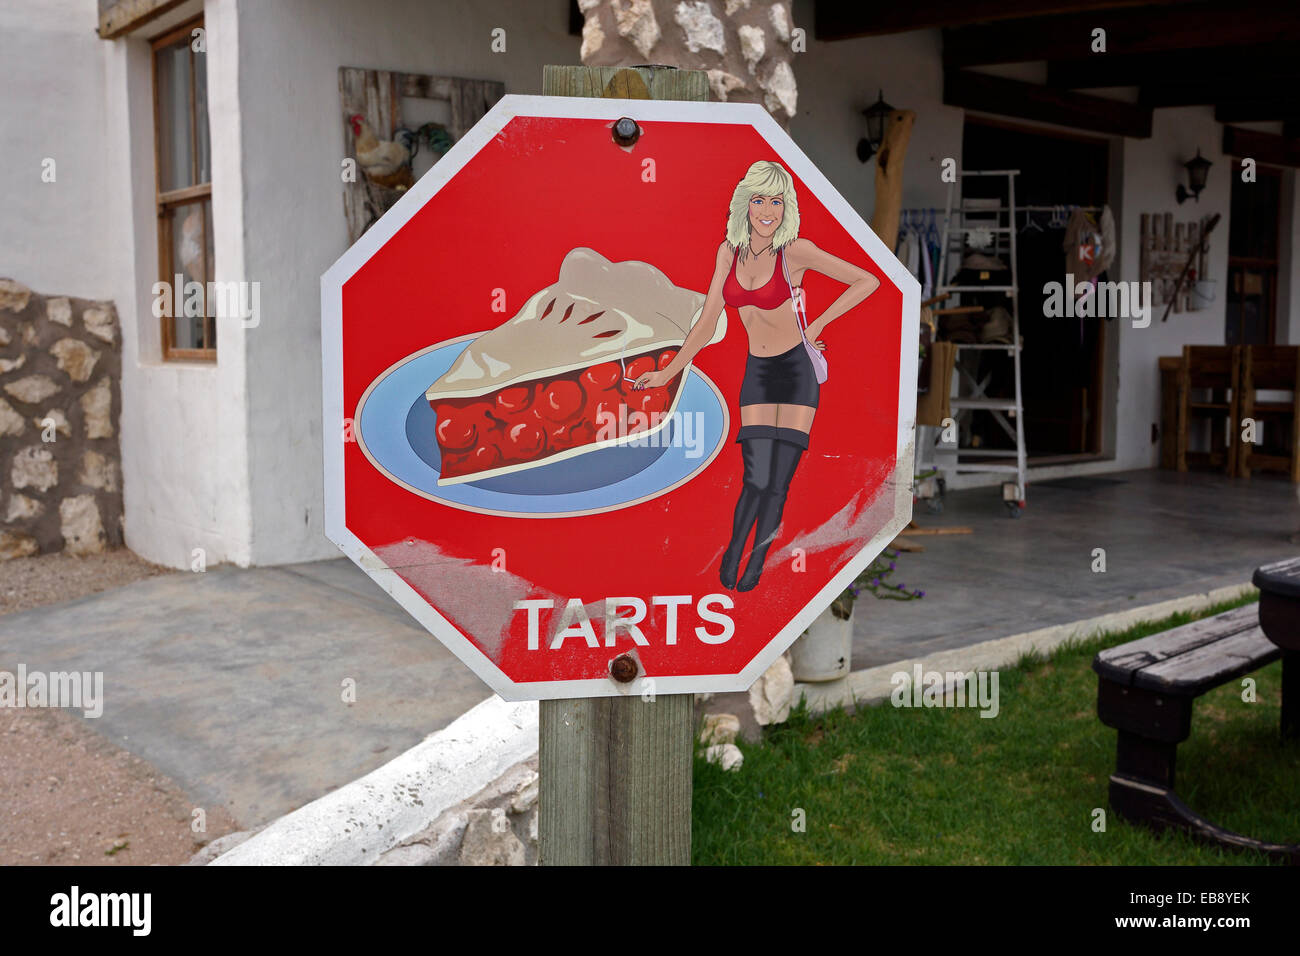 Funny sign at stall in Paternoster, West Coast, Western Cape Province, South Africa. - Stock Image